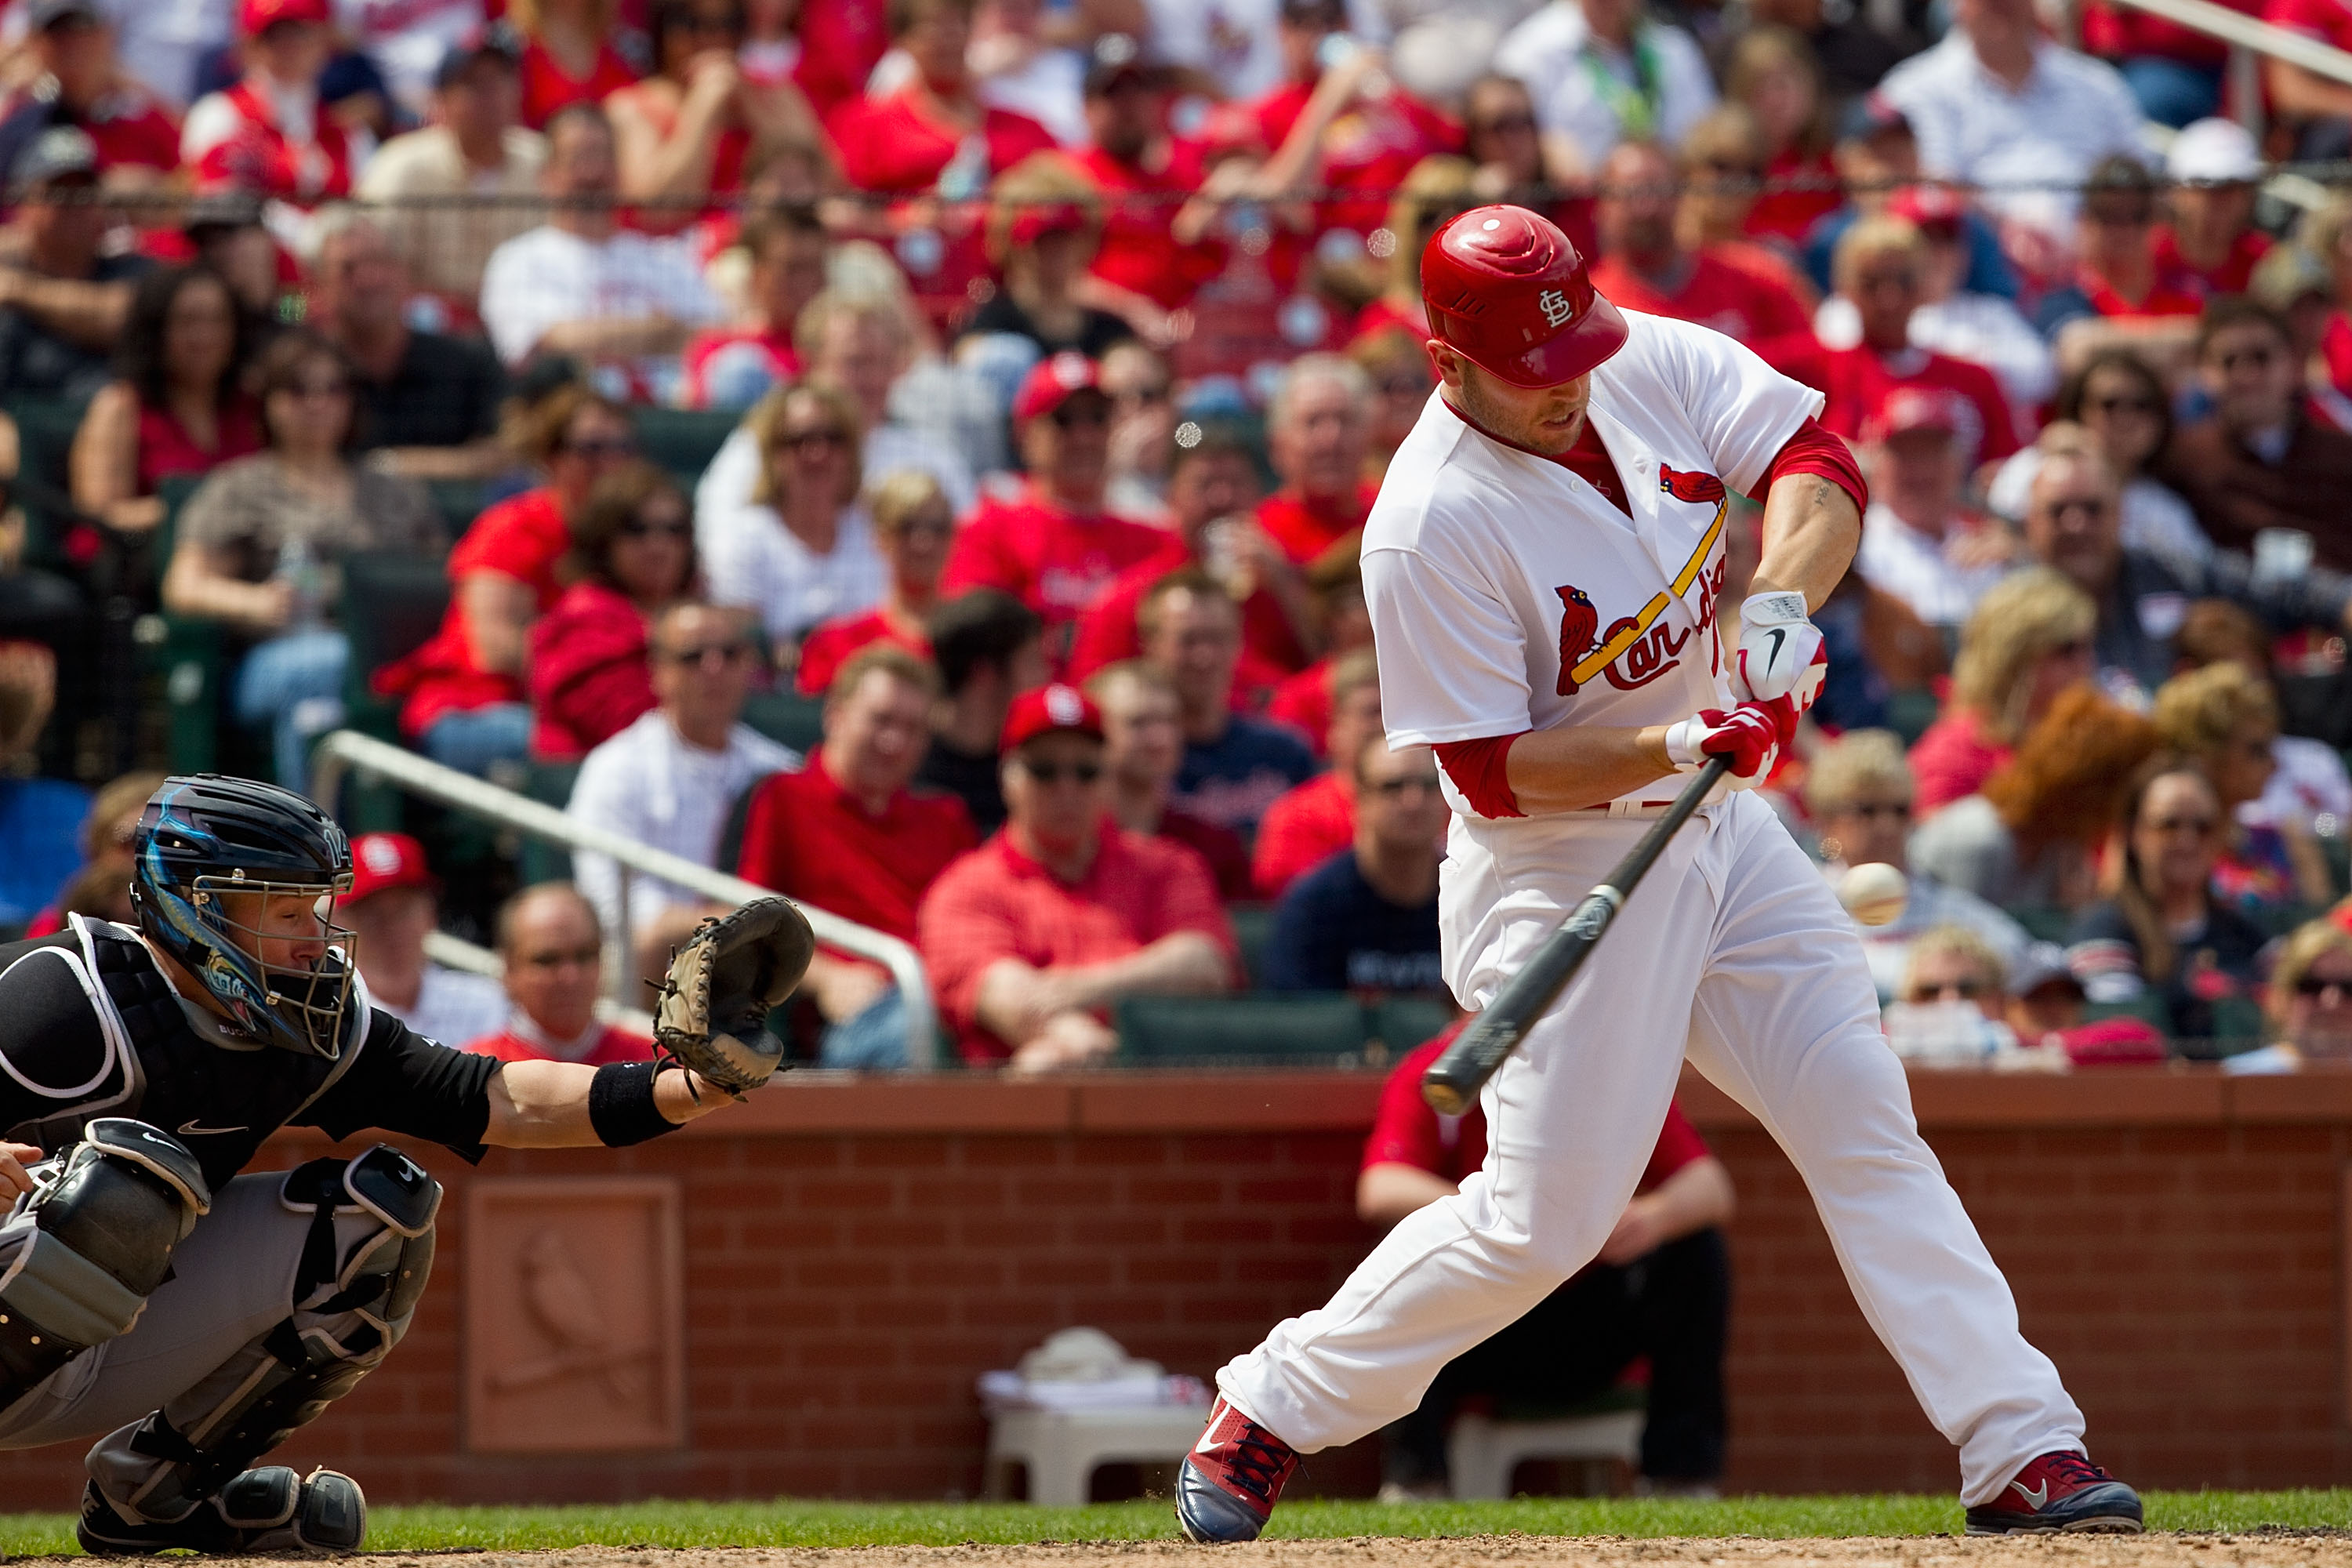 ST. LOUIS, MO - MAY 5: Matt Holliday #7 of the St. Louis Cardinals hits a game-tying RBI single against the Florida Marlins at Busch Stadium on May 5, 2011 in St. Louis, Missouri.  (Photo by Dilip Vishwanat/Getty Images)